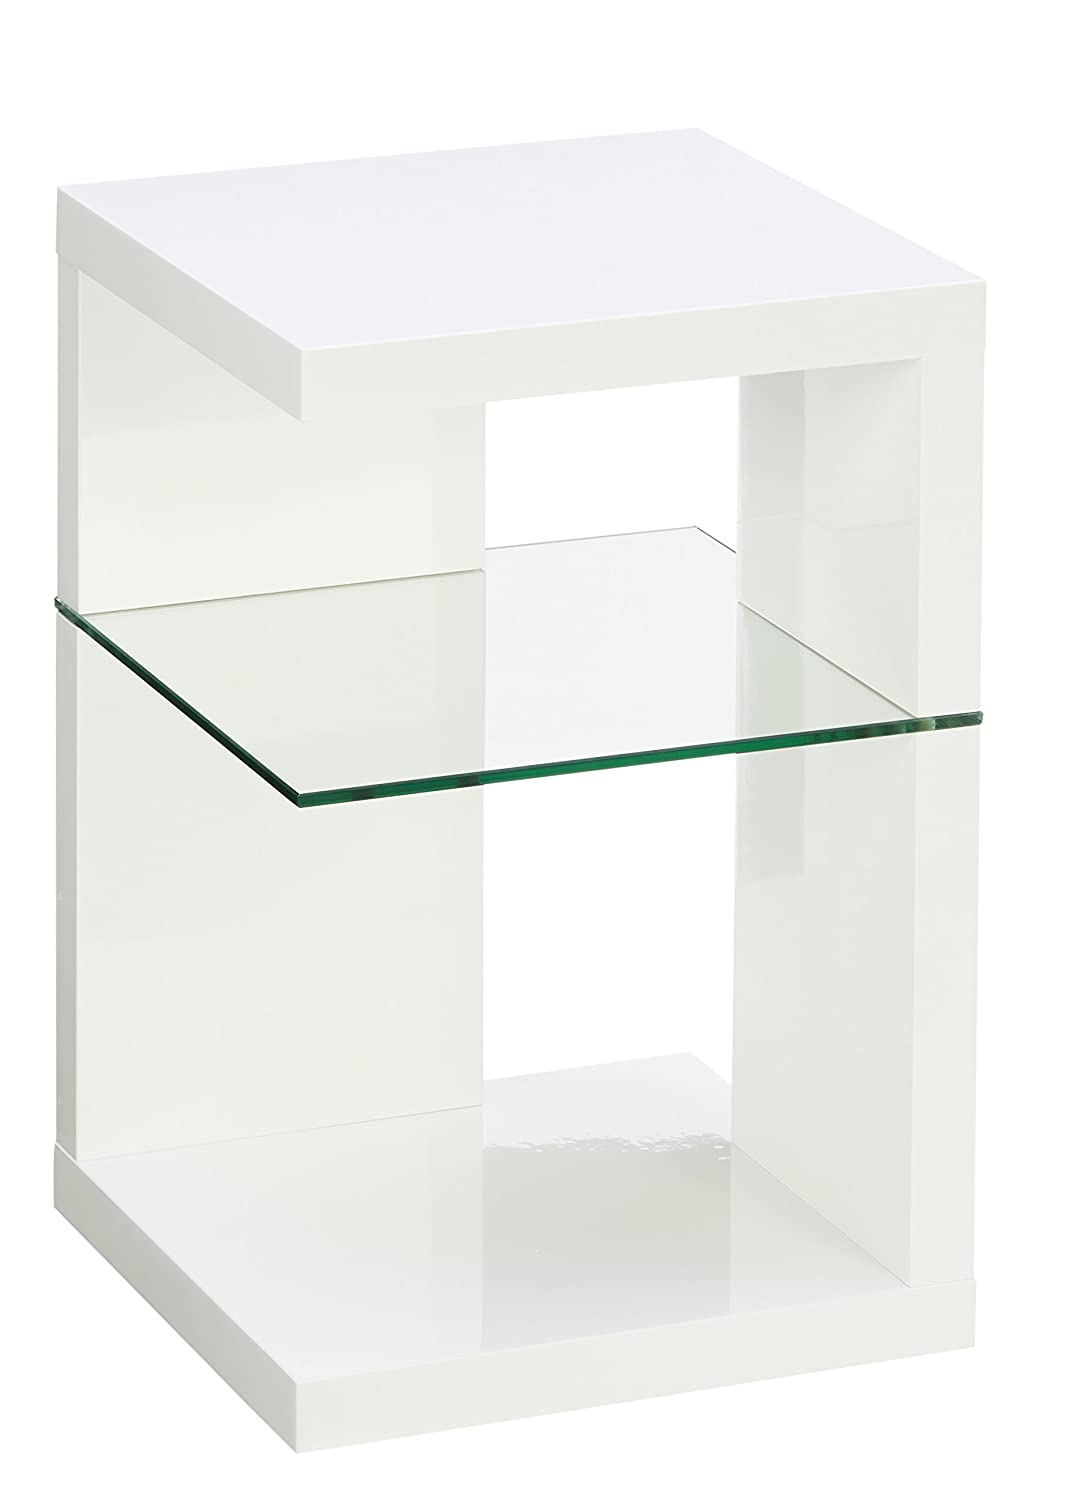 HomeTrends4You 516250 Side Table/Bedside Table 60 x 40 x 40 CM White High Gloss